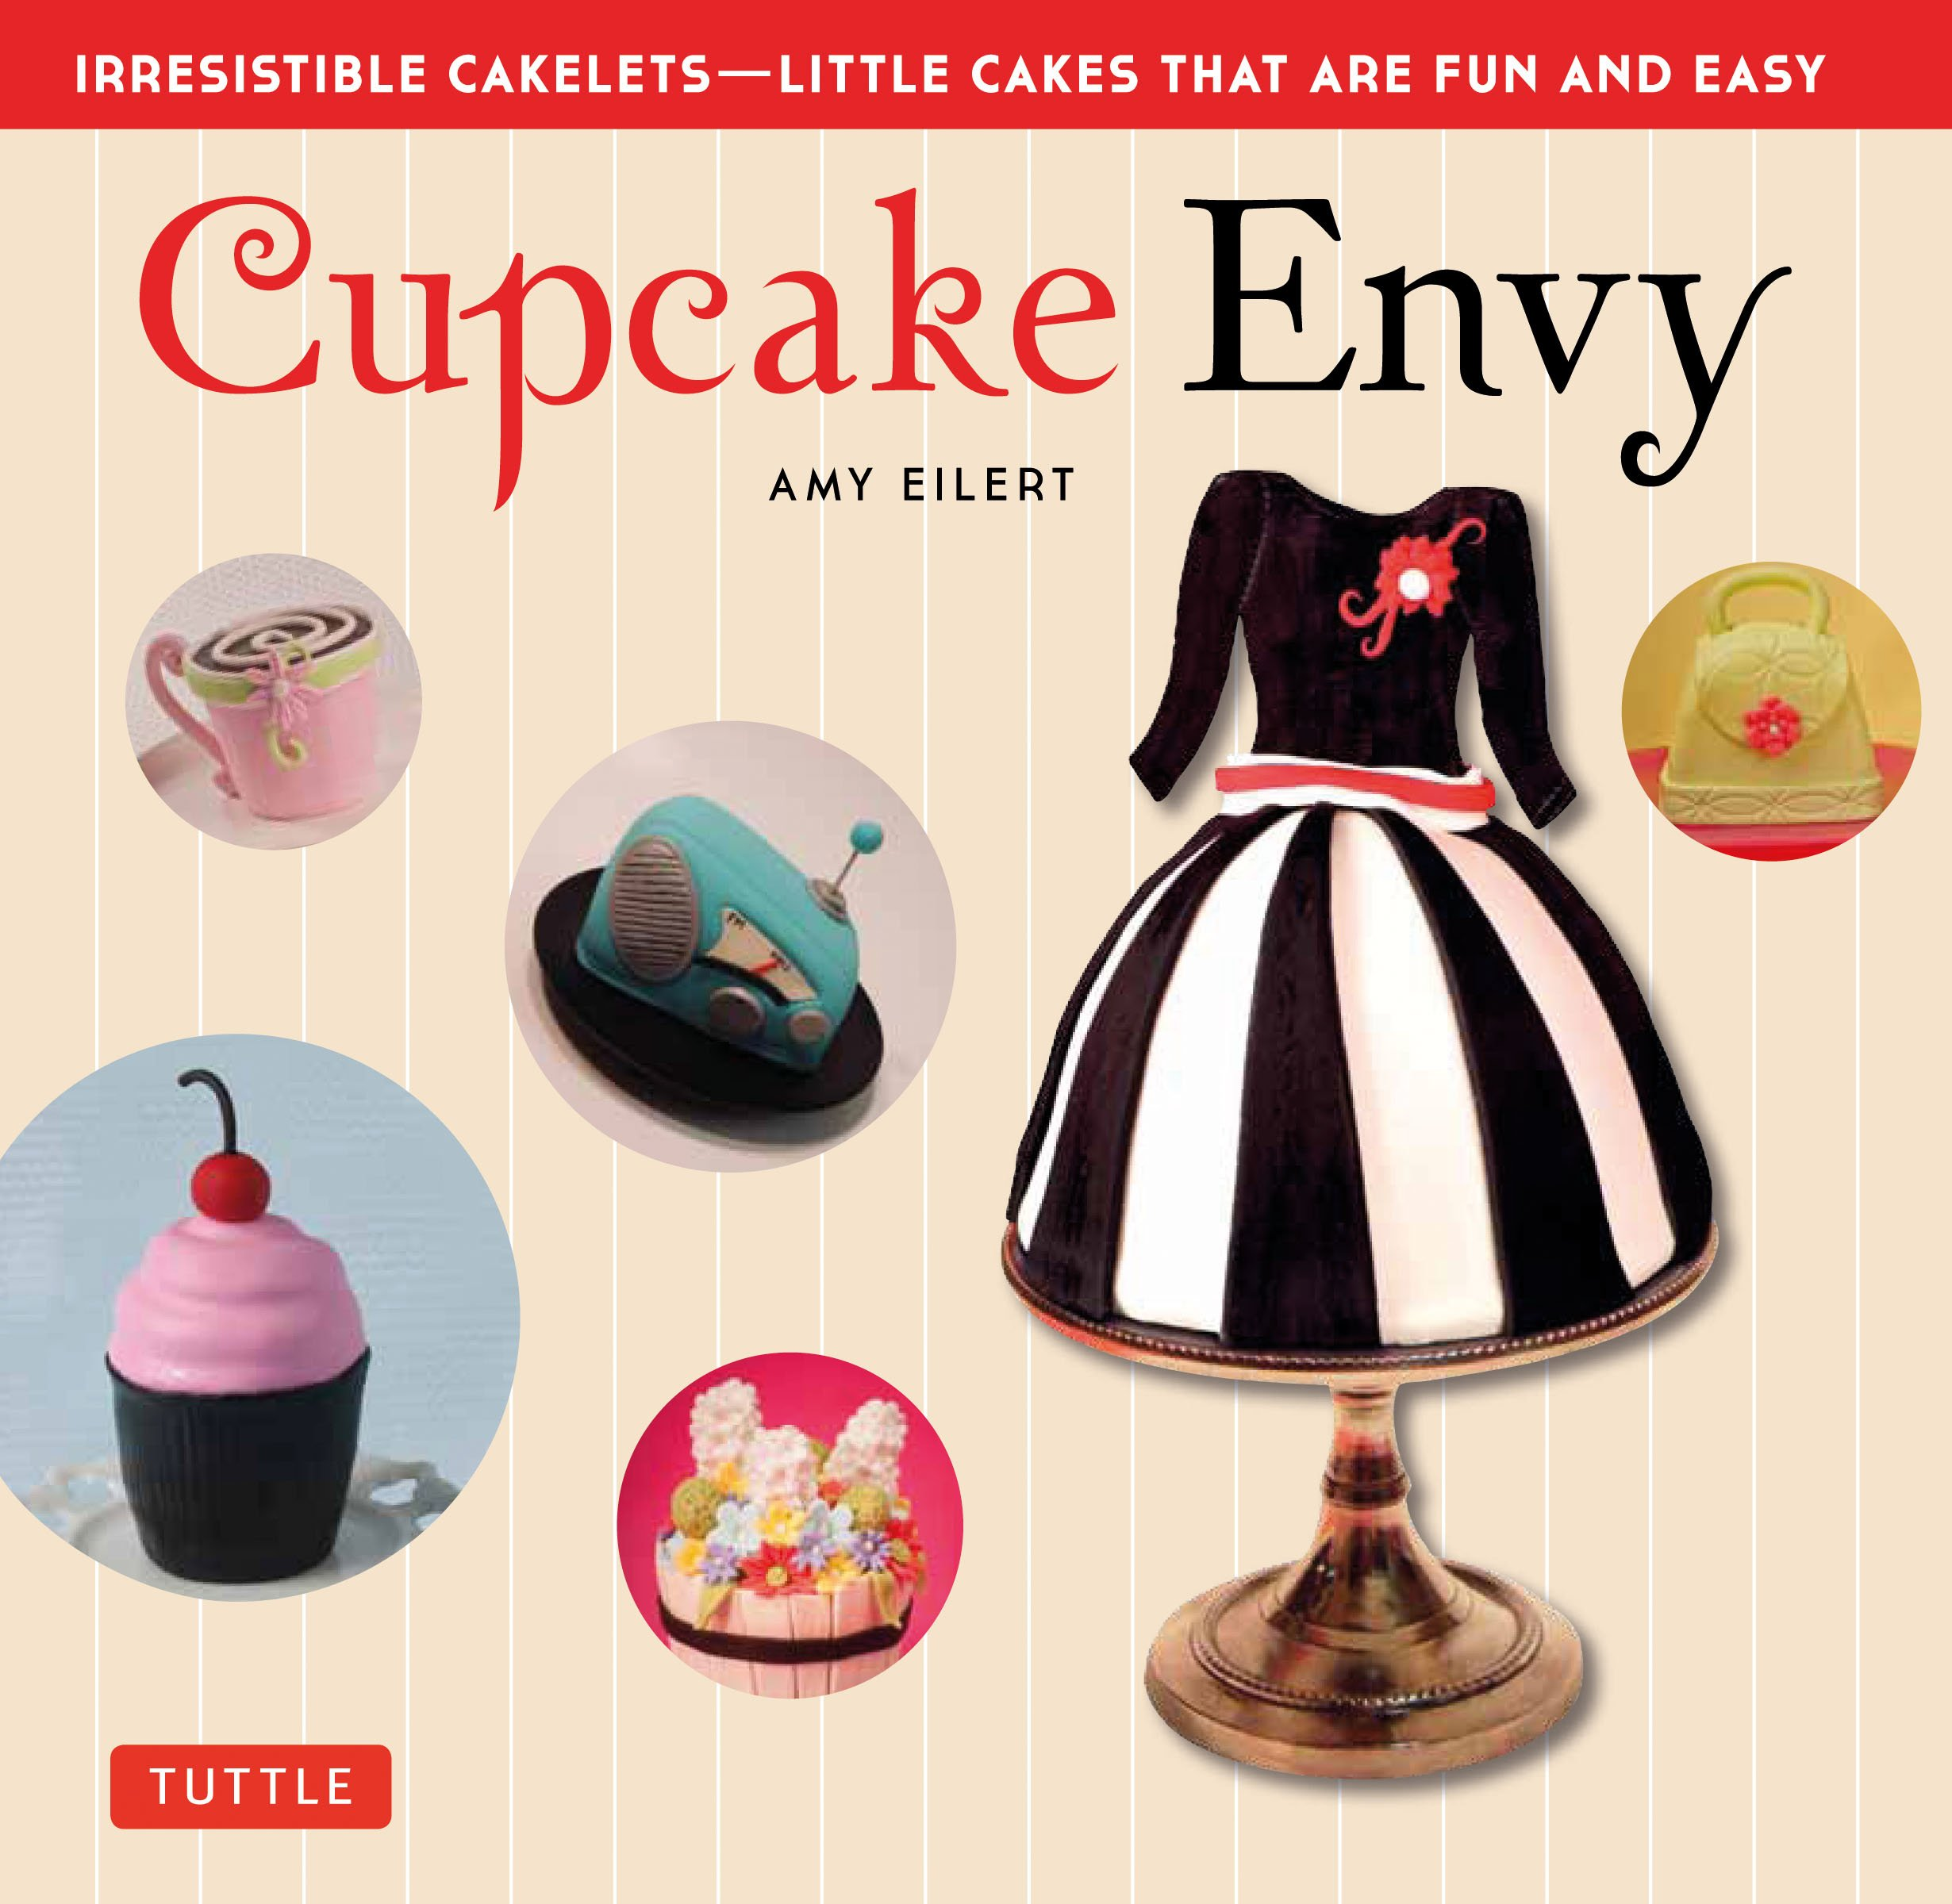 Cupcake Envy Irresistible Cakelets Little product image